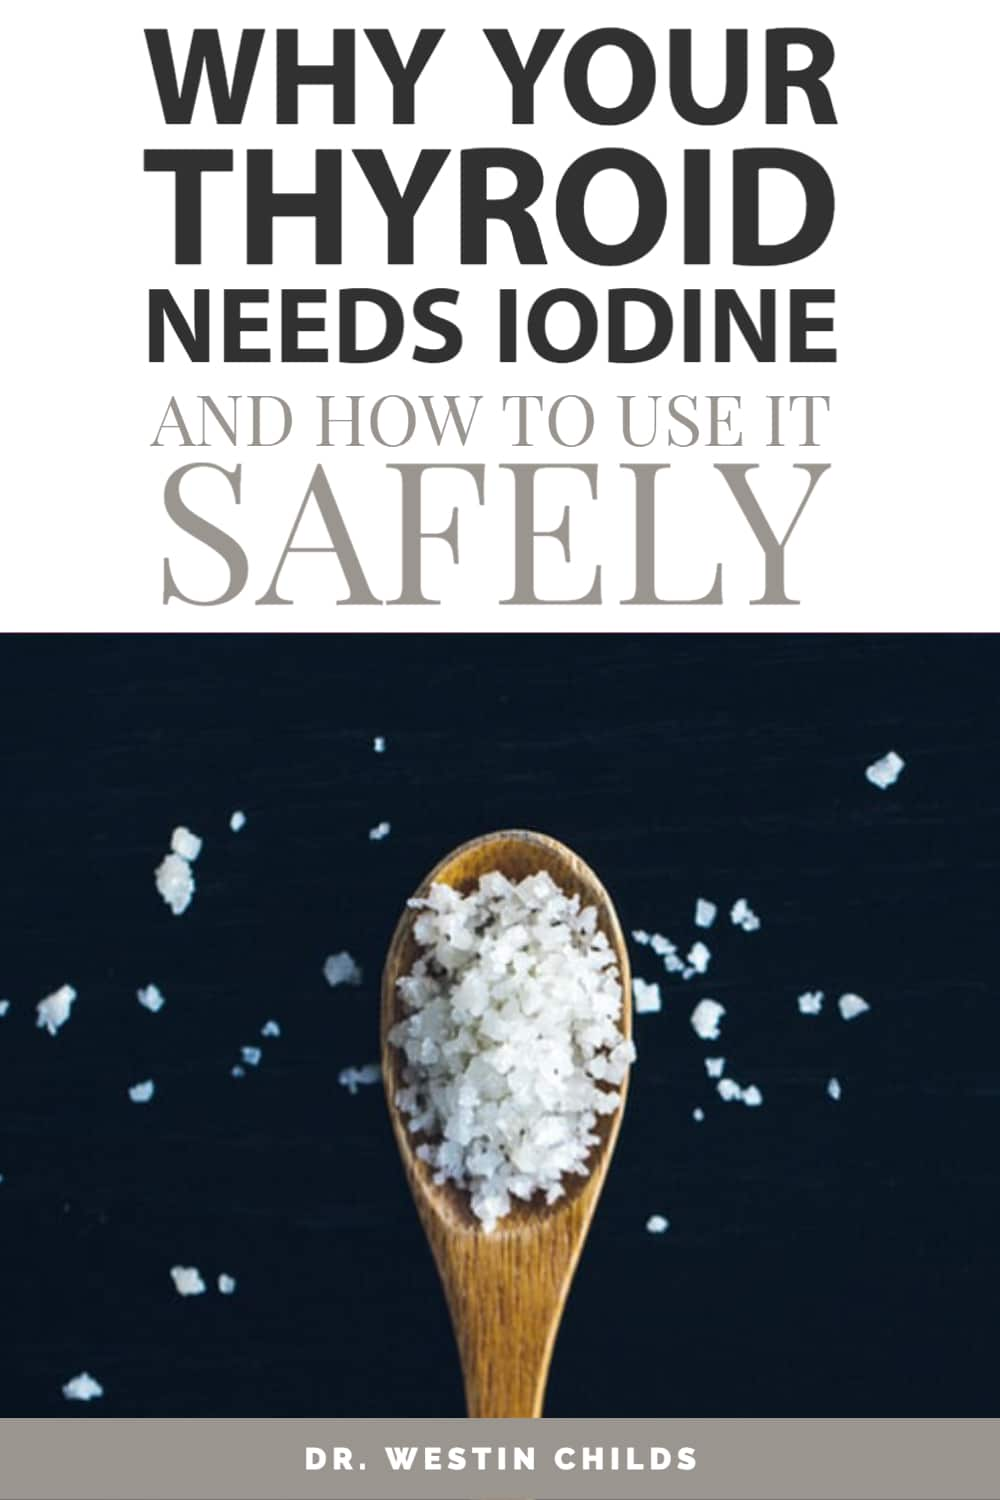 why your thyroid needs iodine